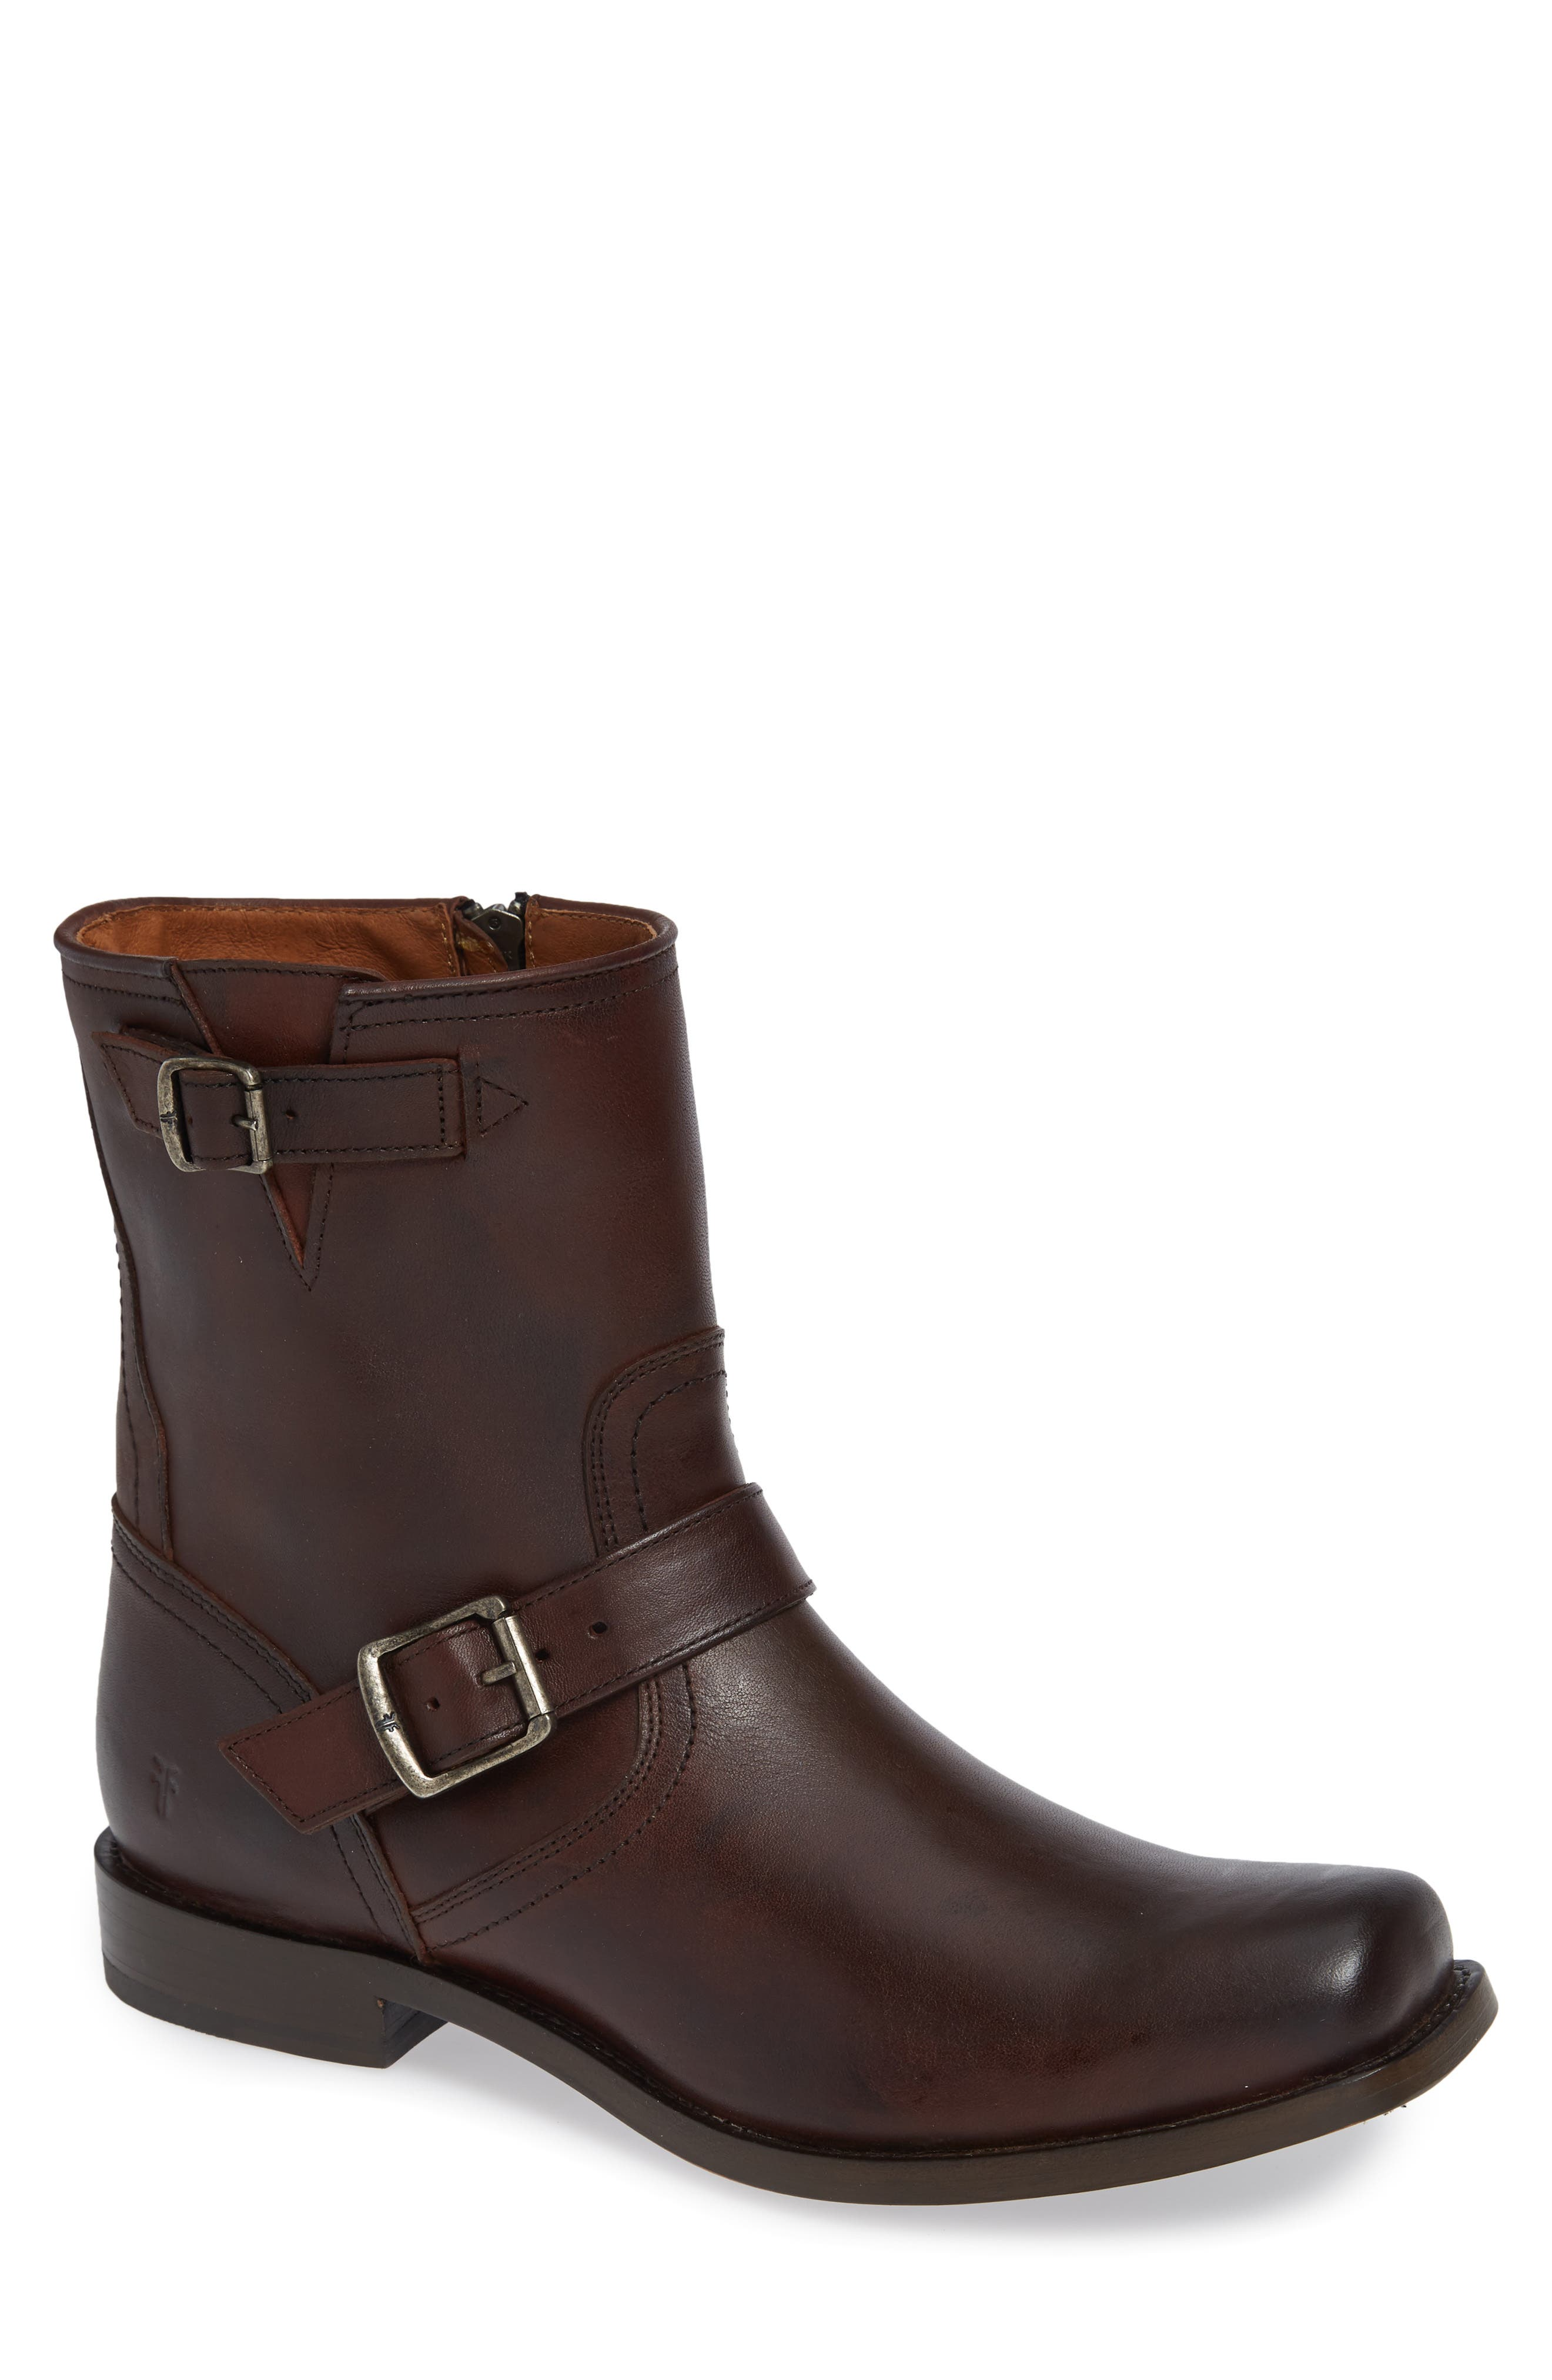 Smith Engineer Boot,                         Main,                         color, BROWN